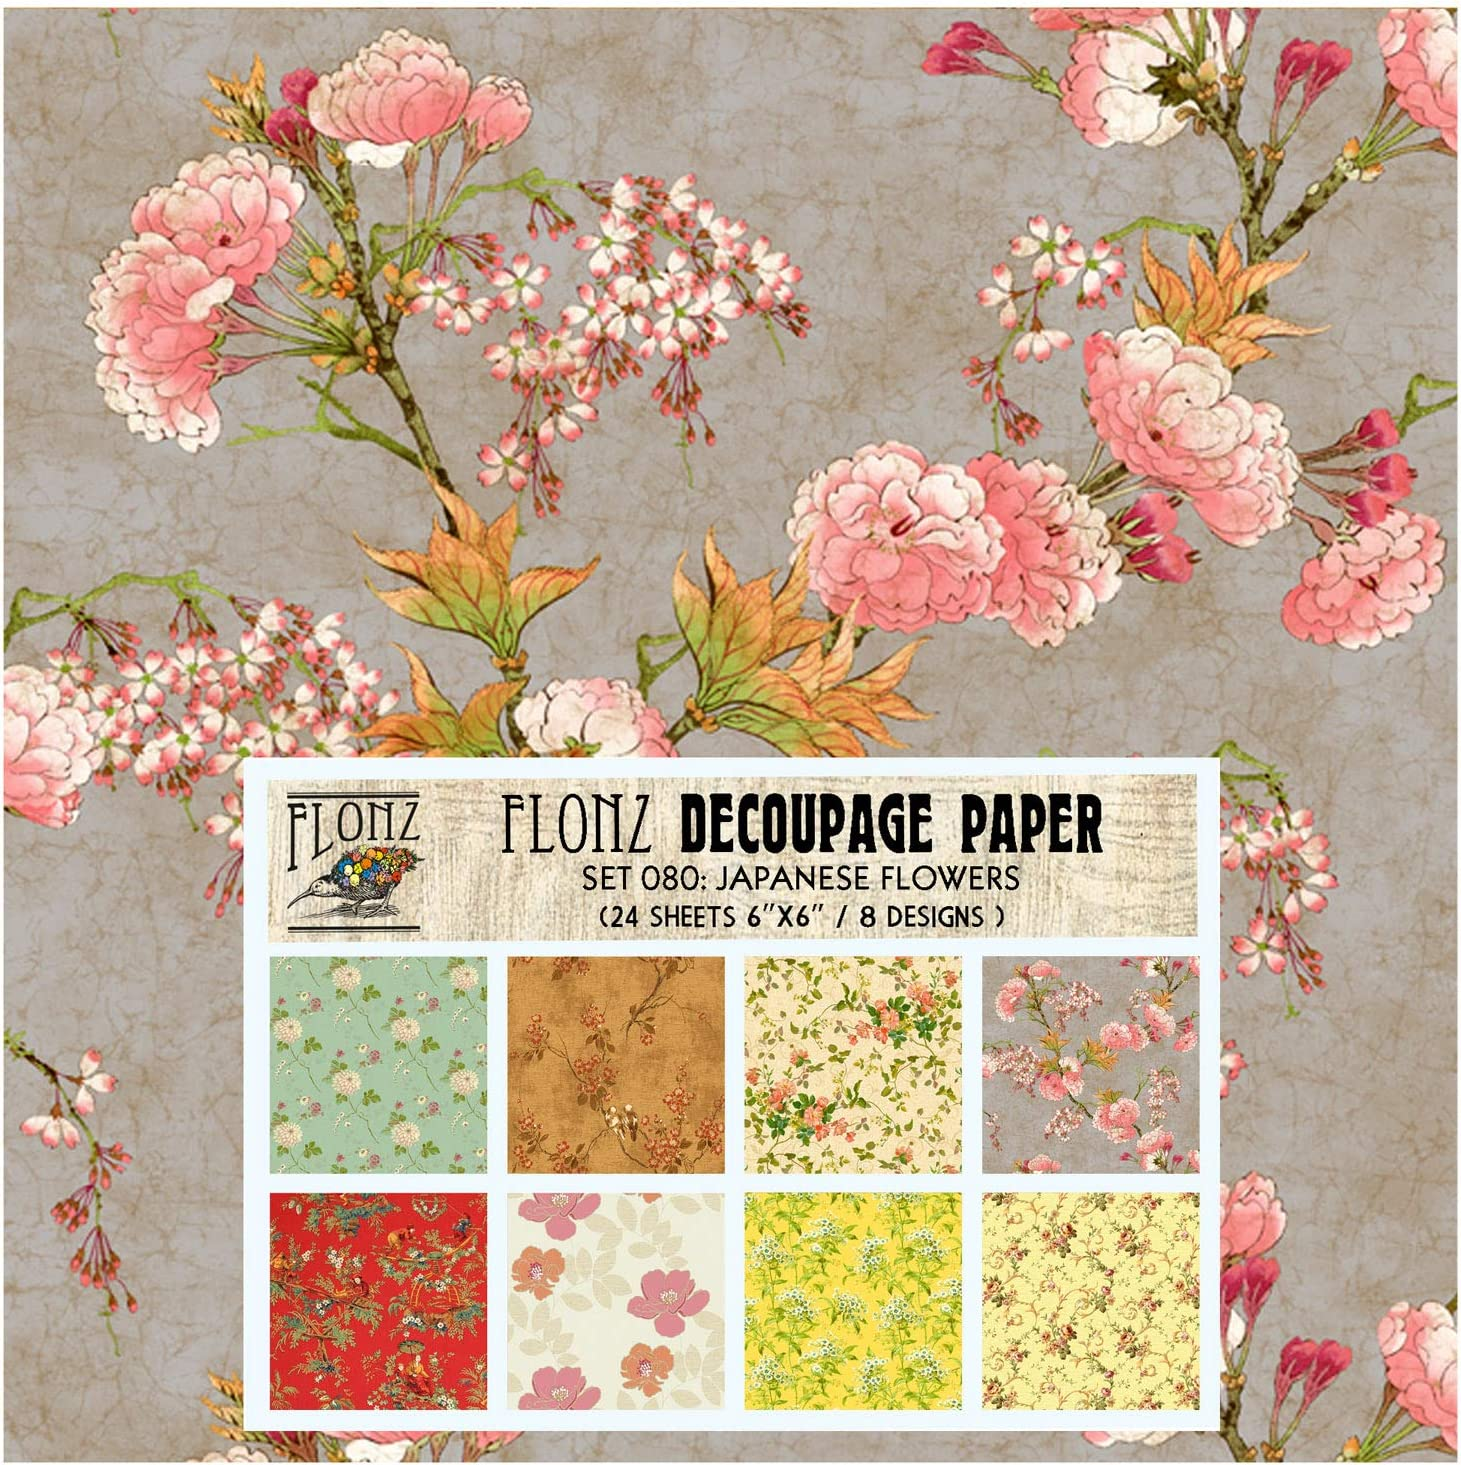 24 Sheets 6x6 Craft and Scrapbooking Decoupage Paper Pack Japanese Flowers FLONZ Vintage Styled Paper for Decoupage